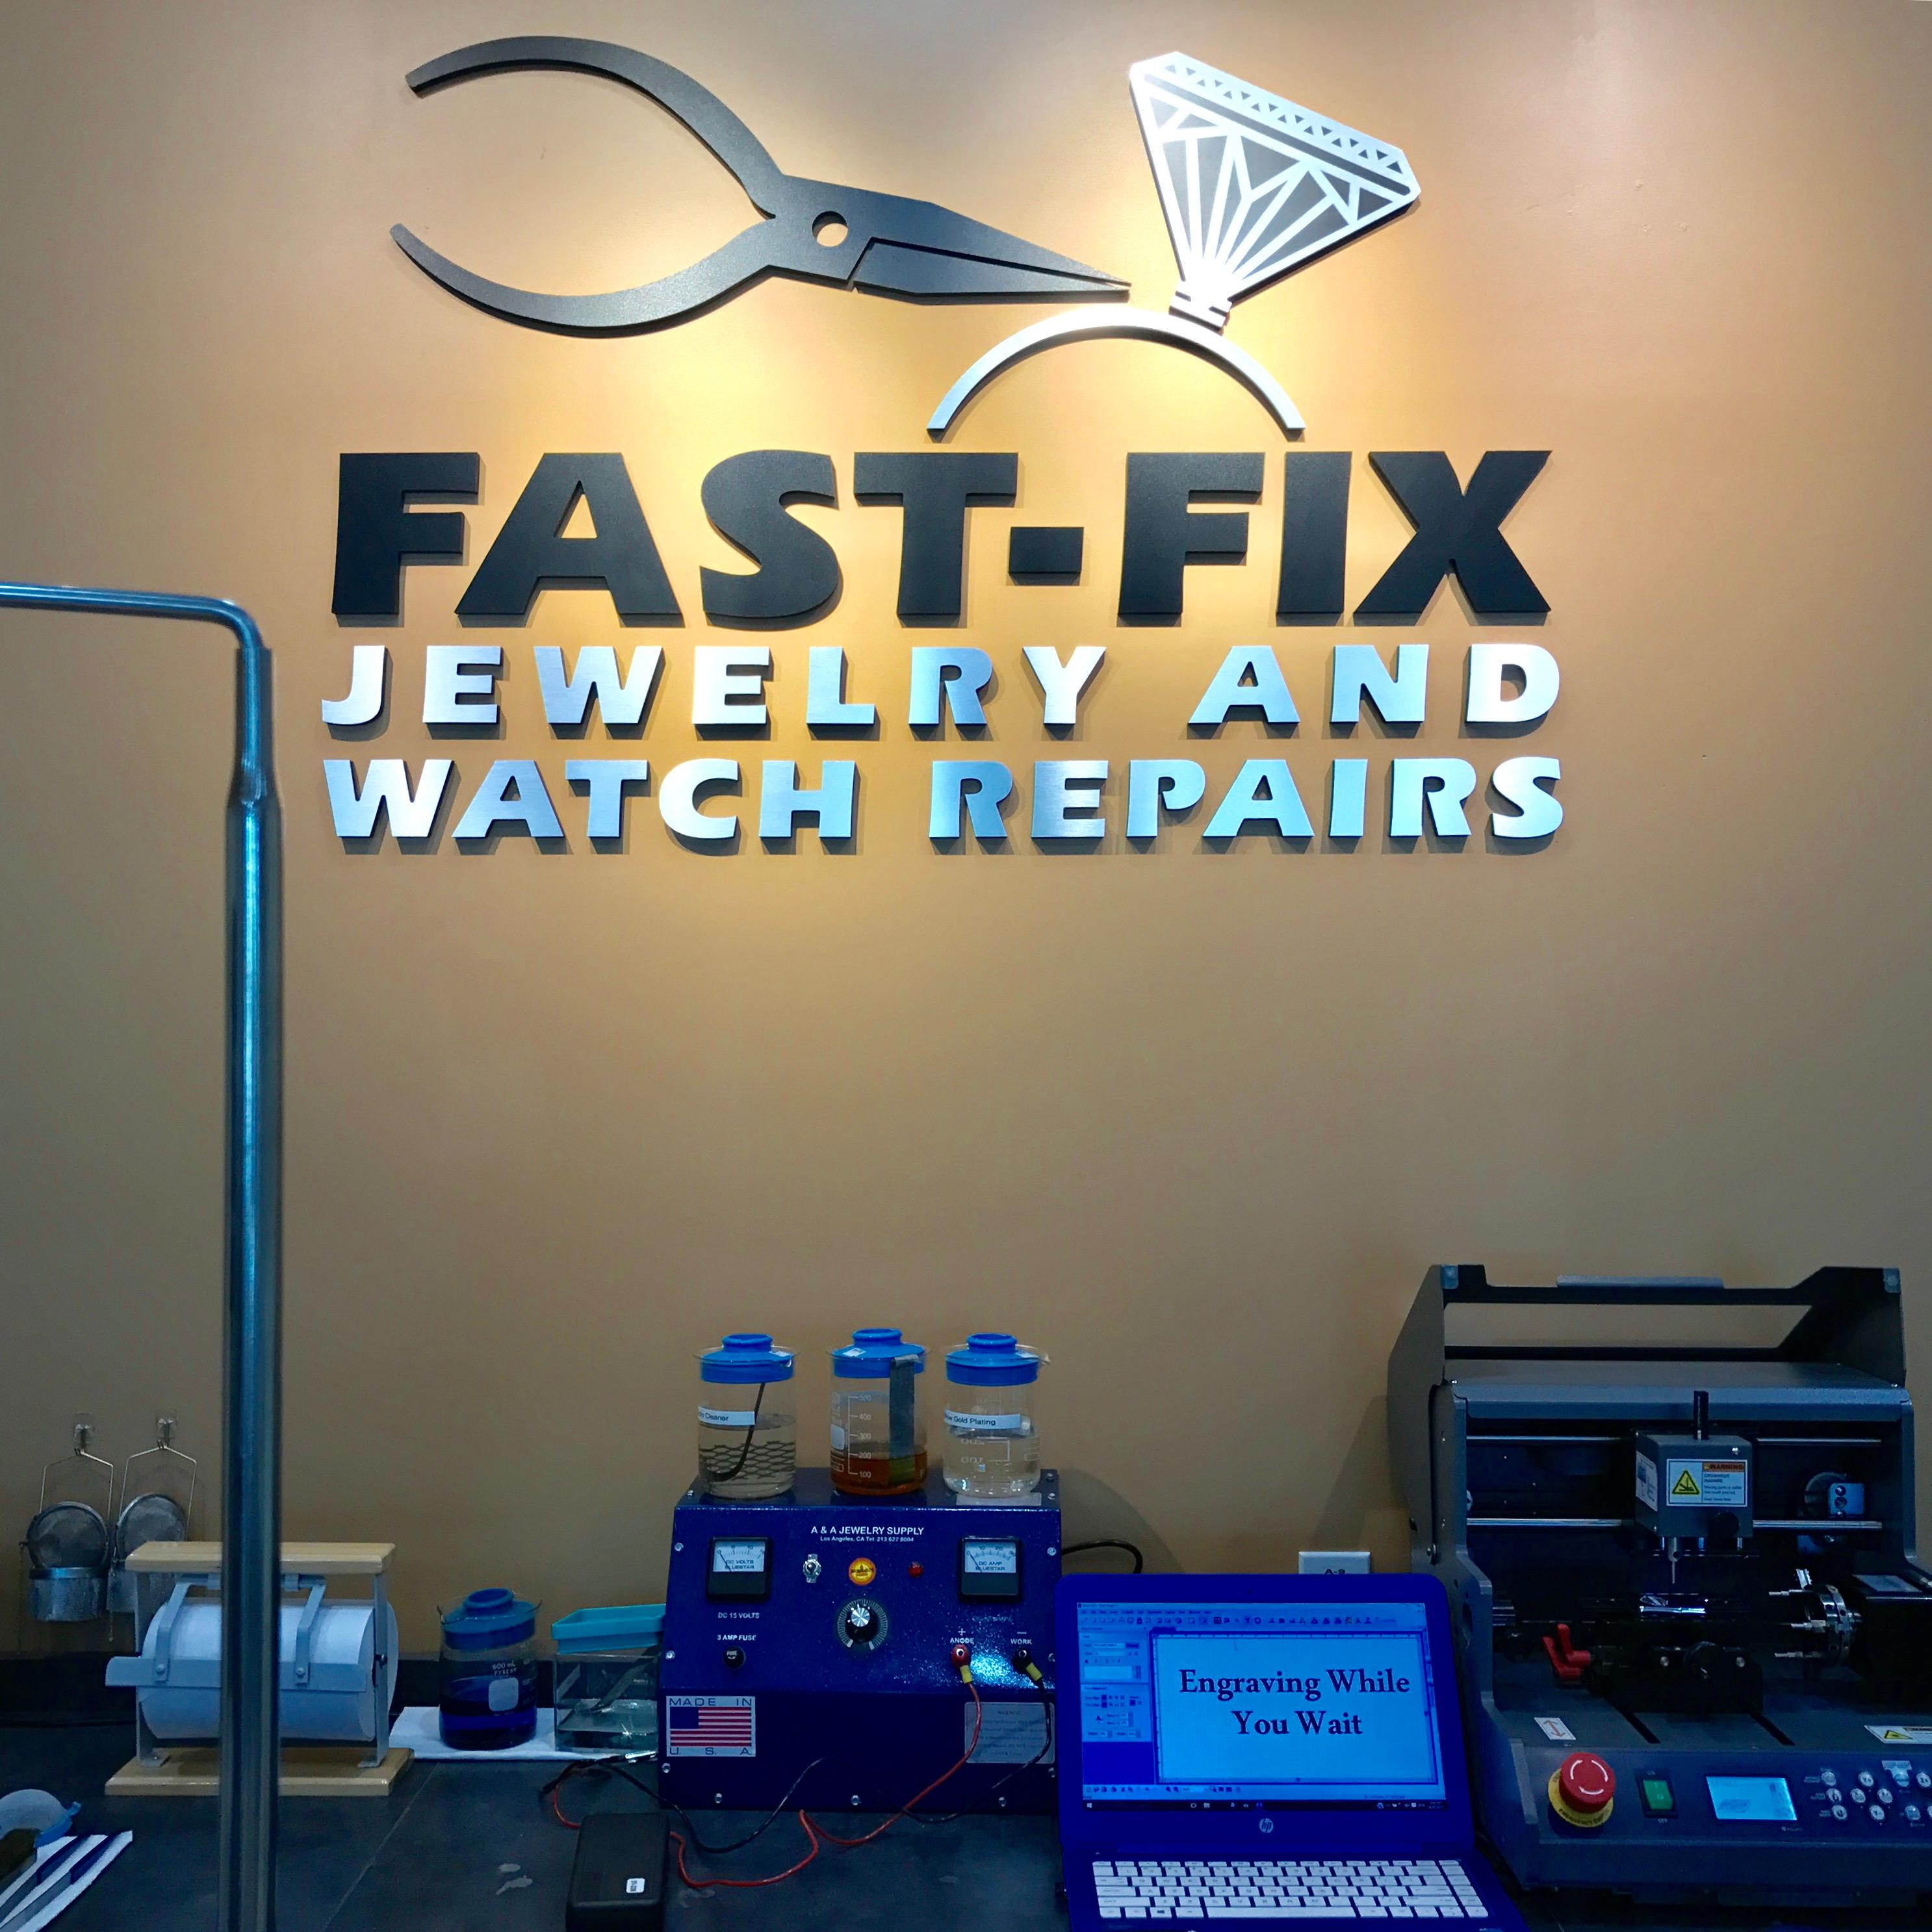 Fast fix jewelry watch repairs irvine irvine for Fast fix jewelry repair